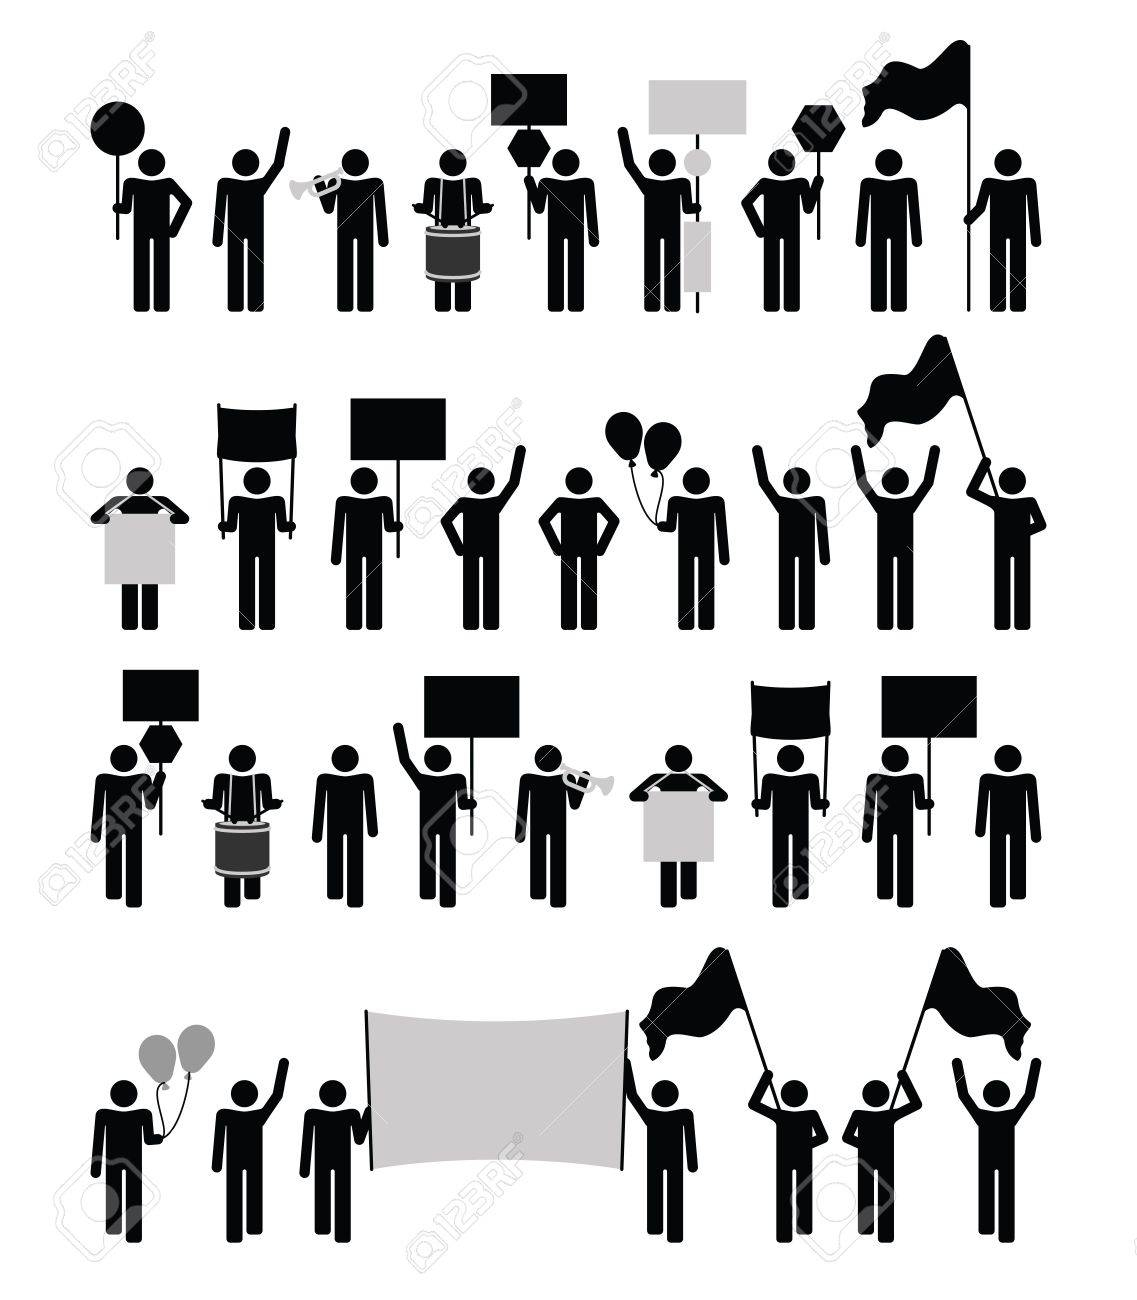 Protest - pictogram collection - 21515727